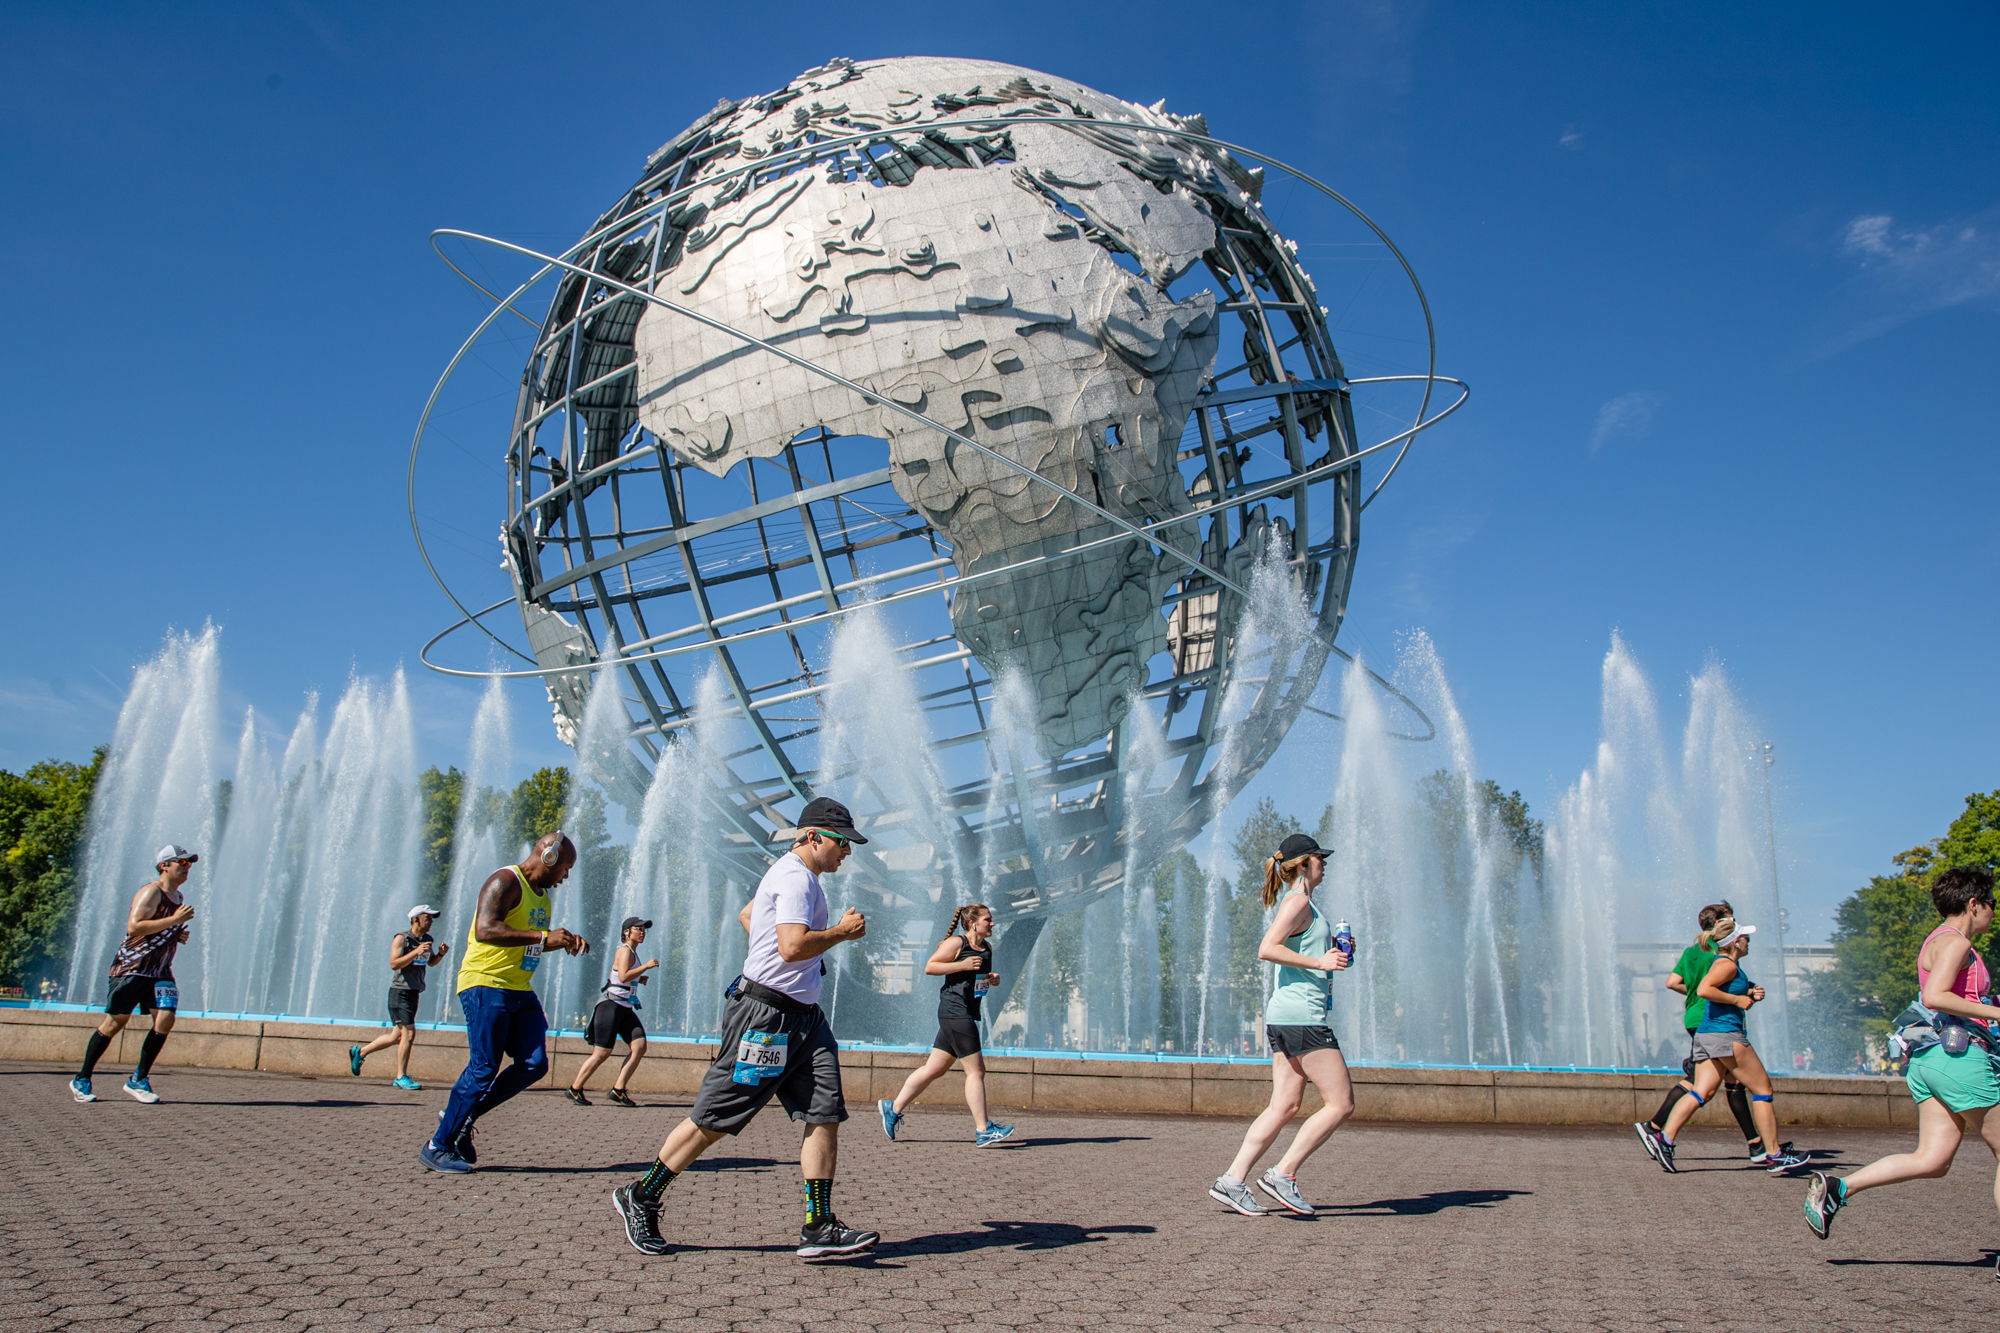 Just under 12,000 runners competed in the New York Road Runners 10K this weekend in Flushing Meadows Corona Park. Photos courtesy of NYRR.